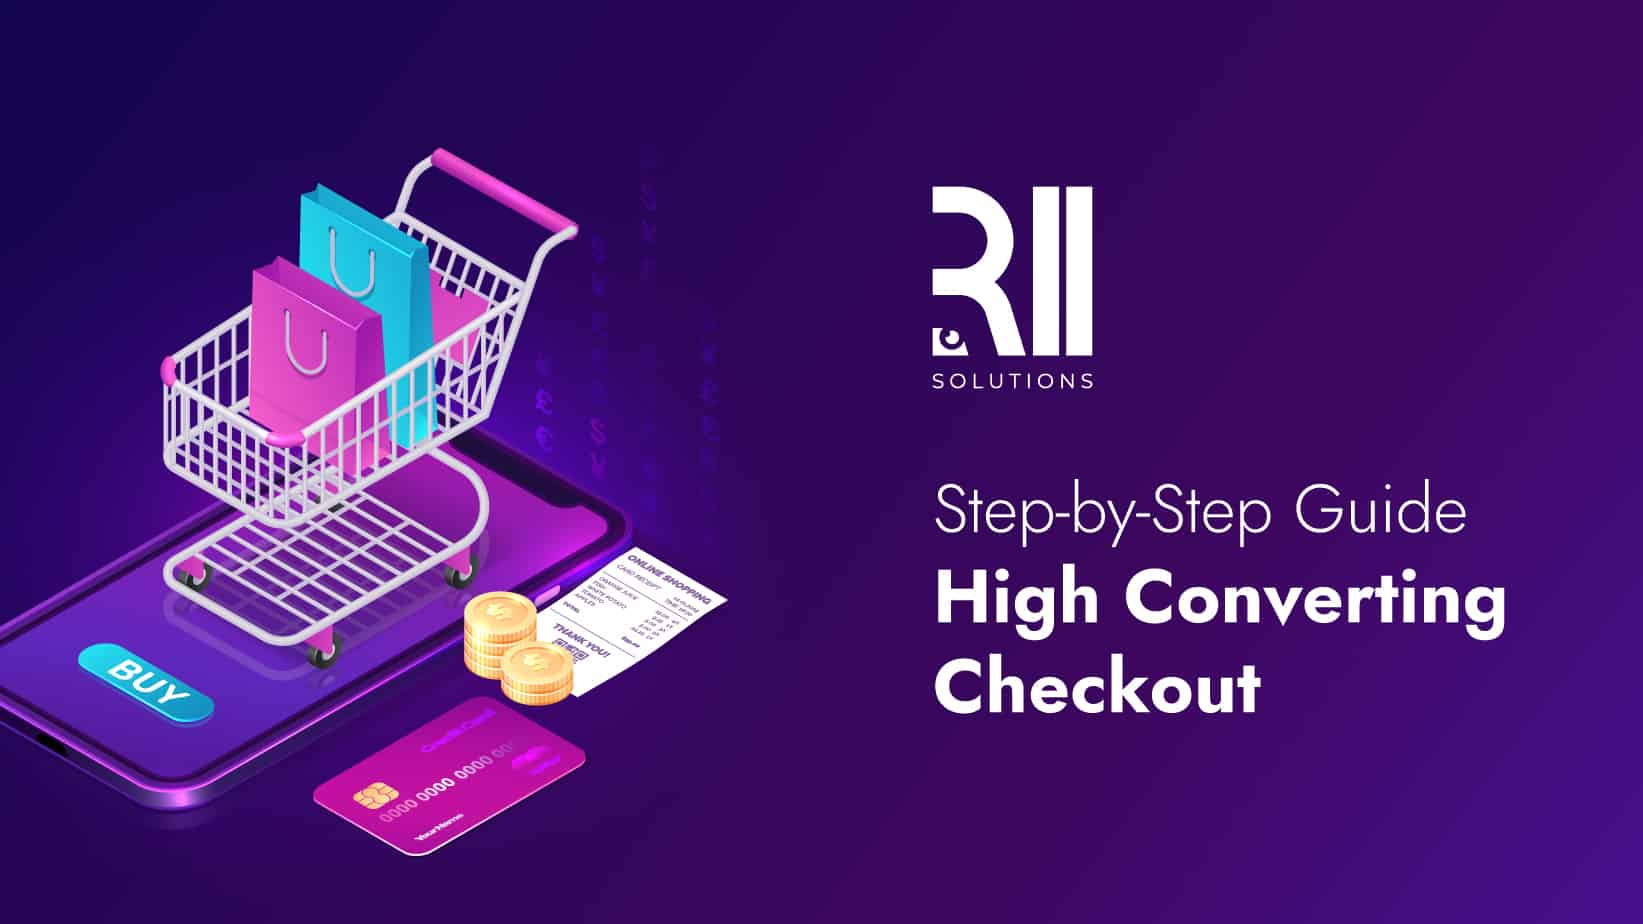 Step-by-Step Guide to a High Converting Checkout